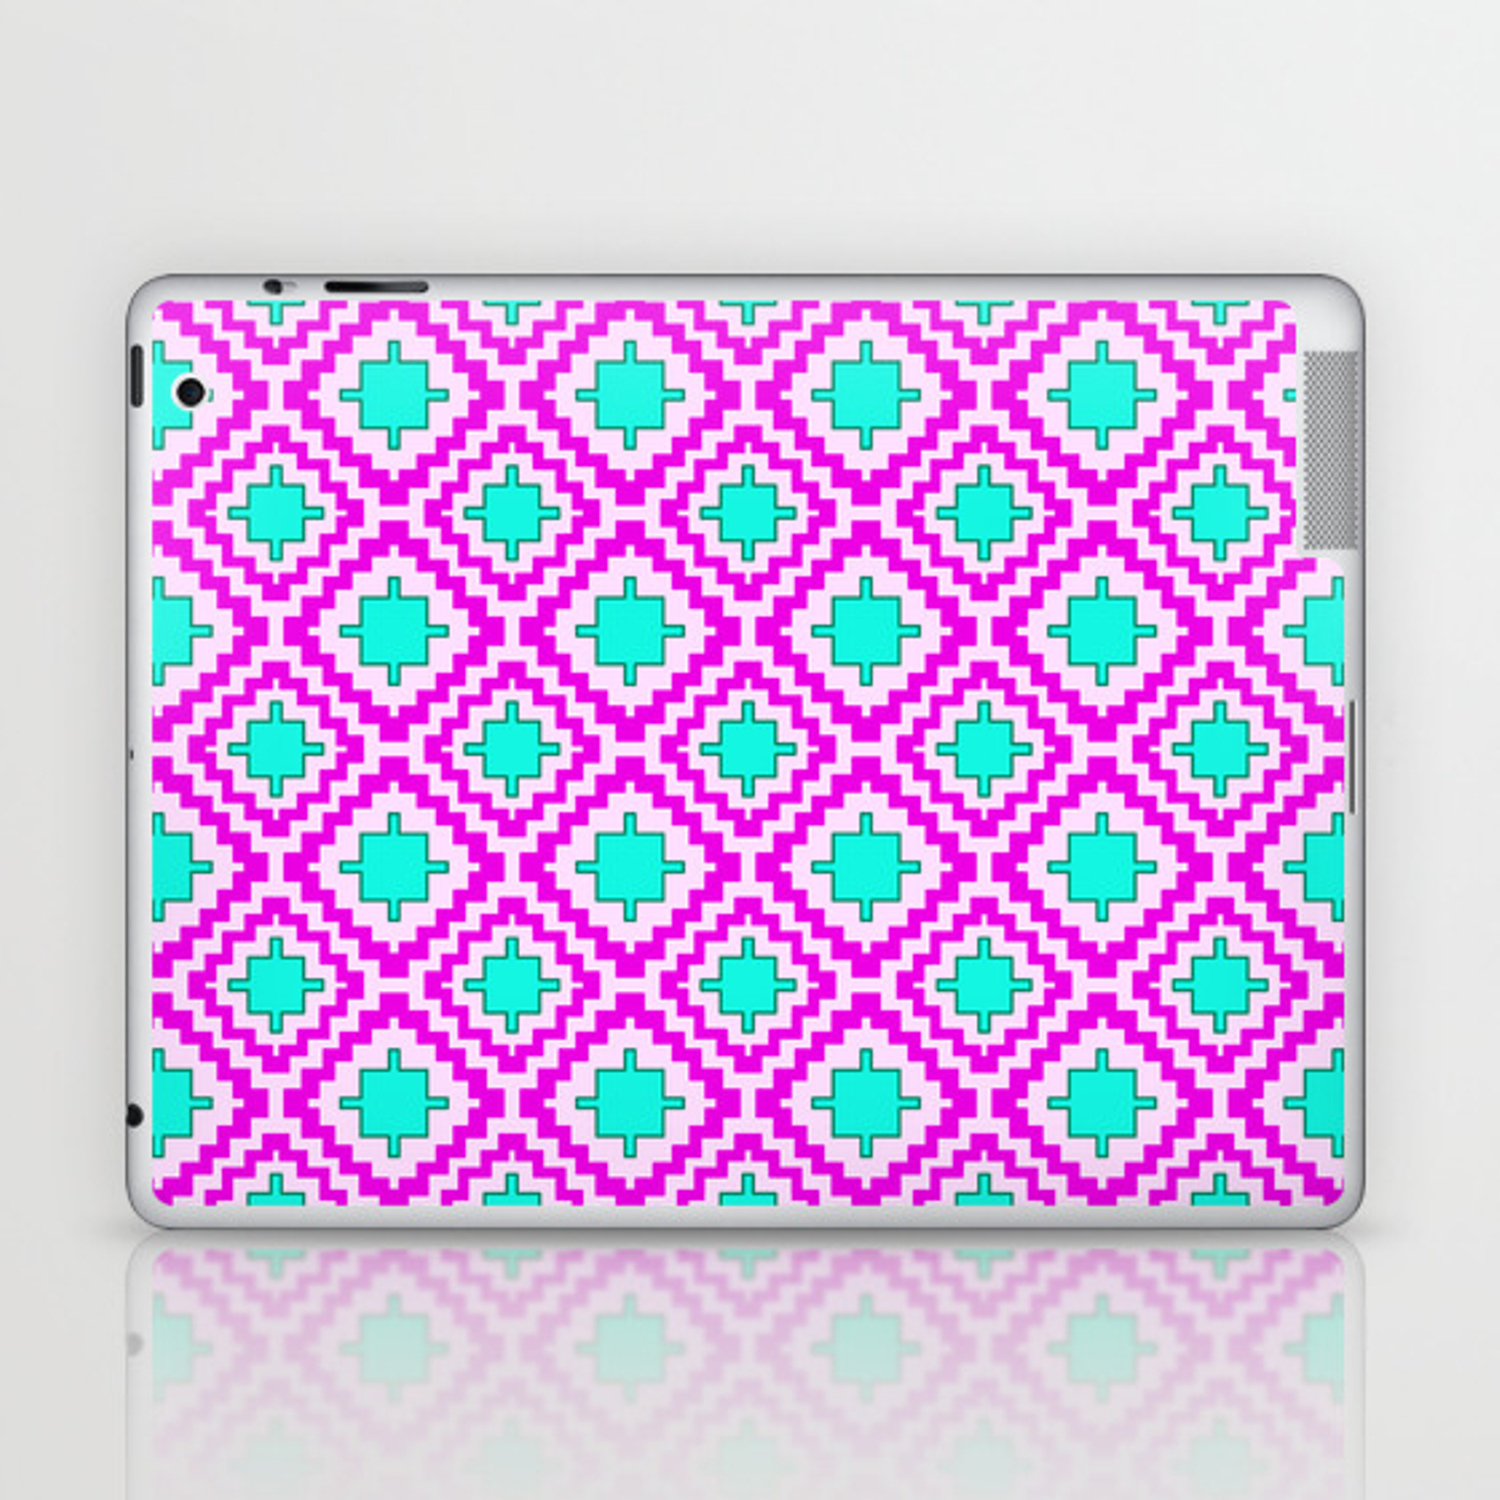 Cowgirl Pink And Turquoise Navajo Native Inspired Oklahoma Arizona Southwestern Design Pattern Laptop & Ipad Skindpartgallery With Regard To Southwest Pink Credenzas (View 14 of 20)